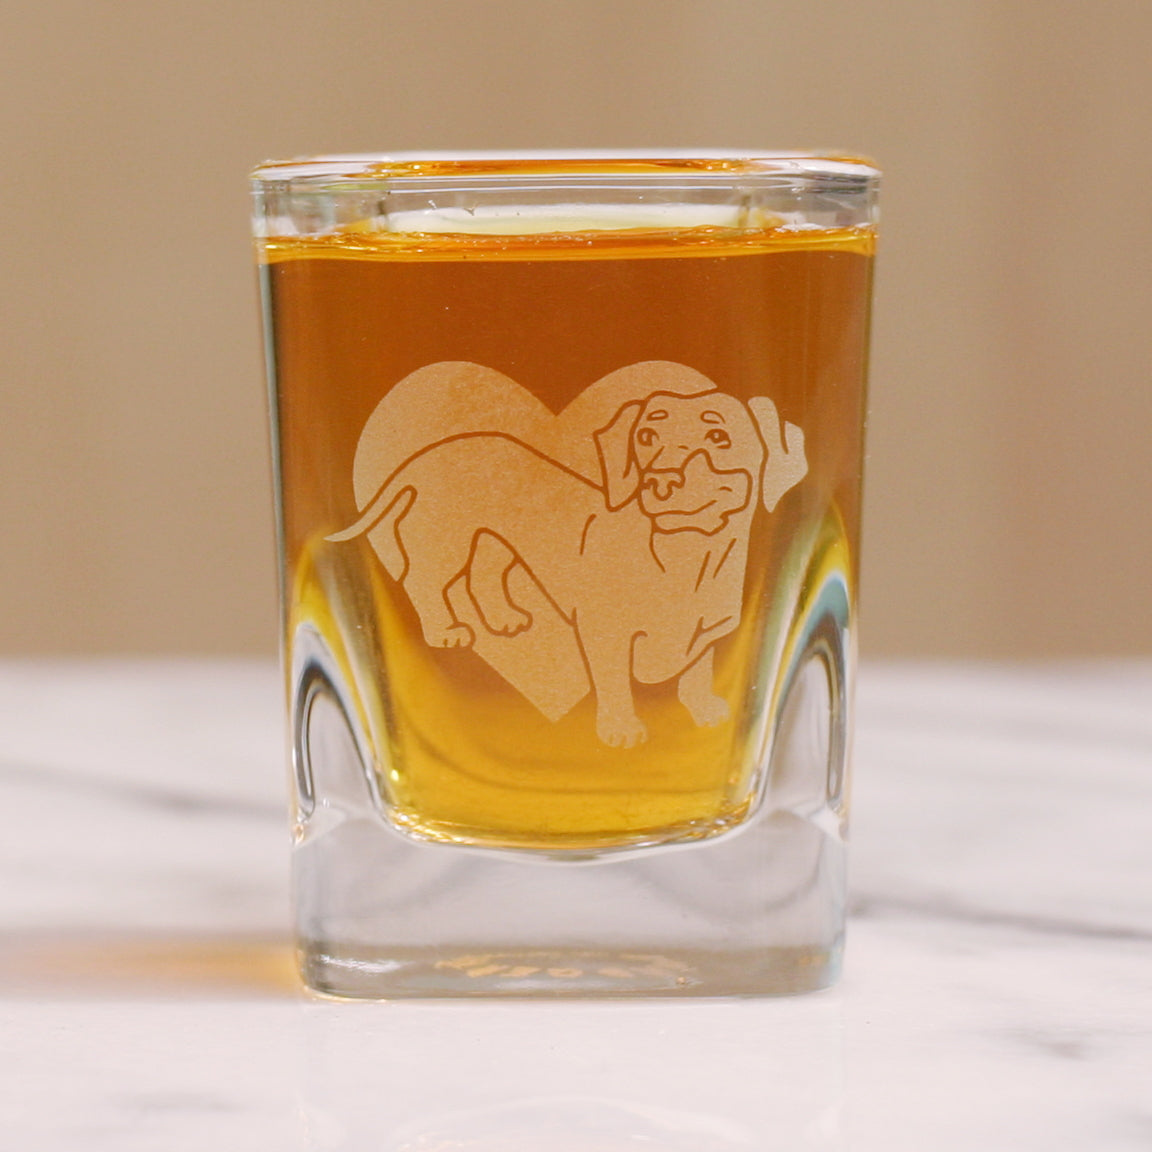 Dachshund dog shot glass by Bread and Badger